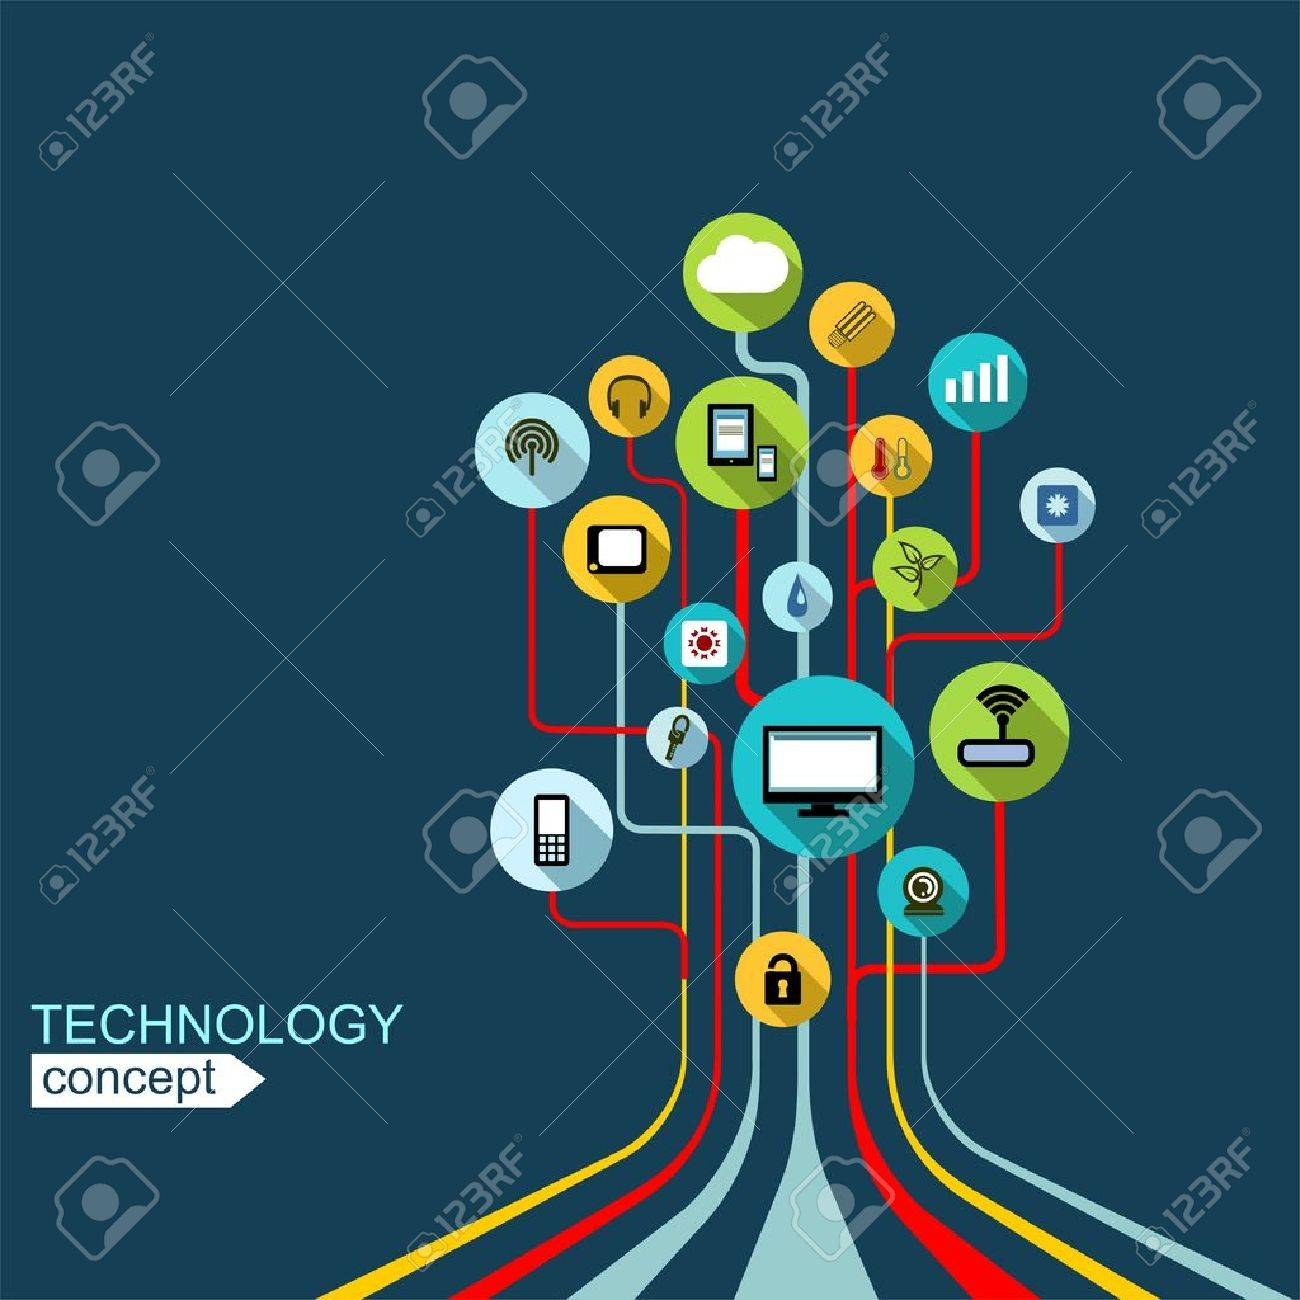 Concept technology background with lines, circles and icons. Growth tree (circuit) concept with mobile phone, technology, laptop, cloud computing, smart house - 41958017